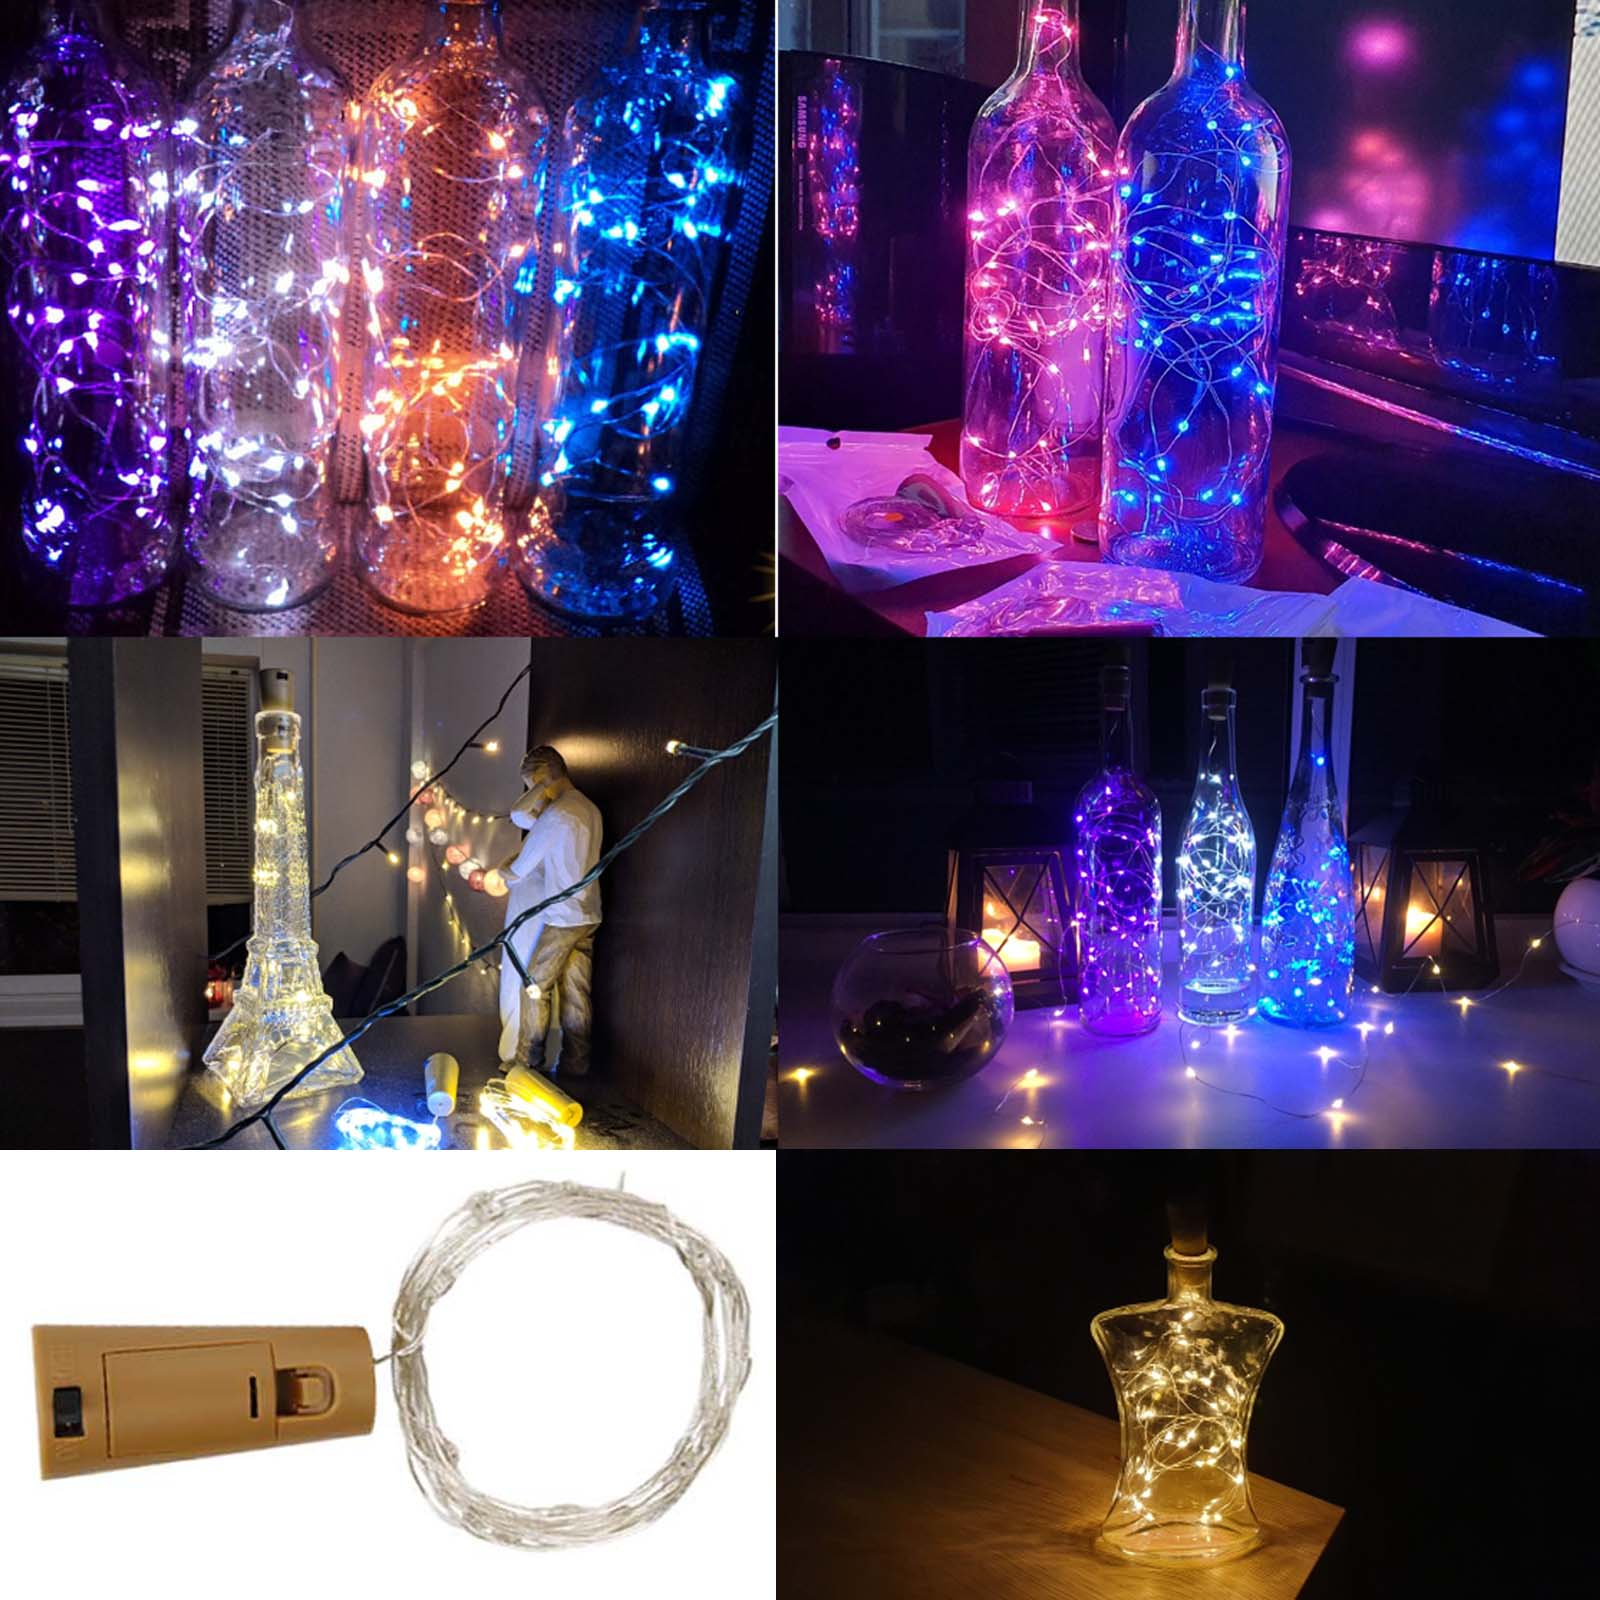 YORYZENG 1M 2M LED Garland String Fairy Lights For Glass Craft Bottle New Year Christmas Tree Wedding Birthday Party Decoration